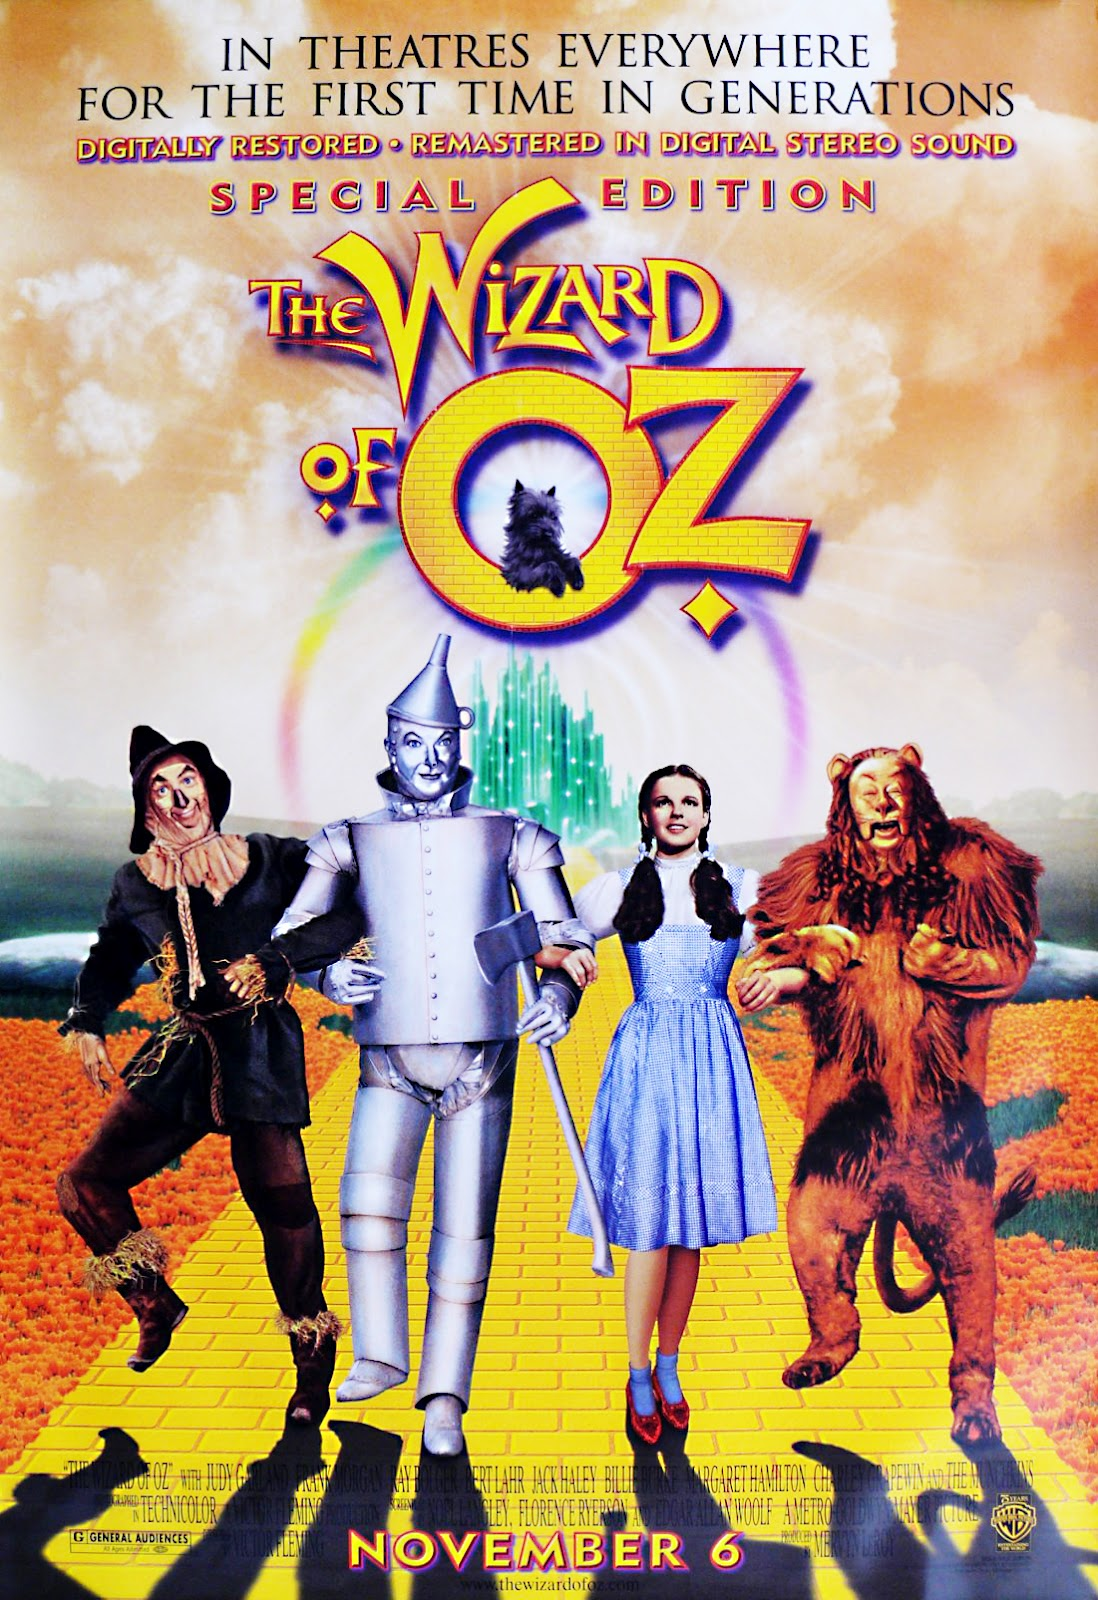 the wizard of oz semiotic analysis Research essay sample on wizard of oz wicked witch custom essay writing wizard dorothy world witch.